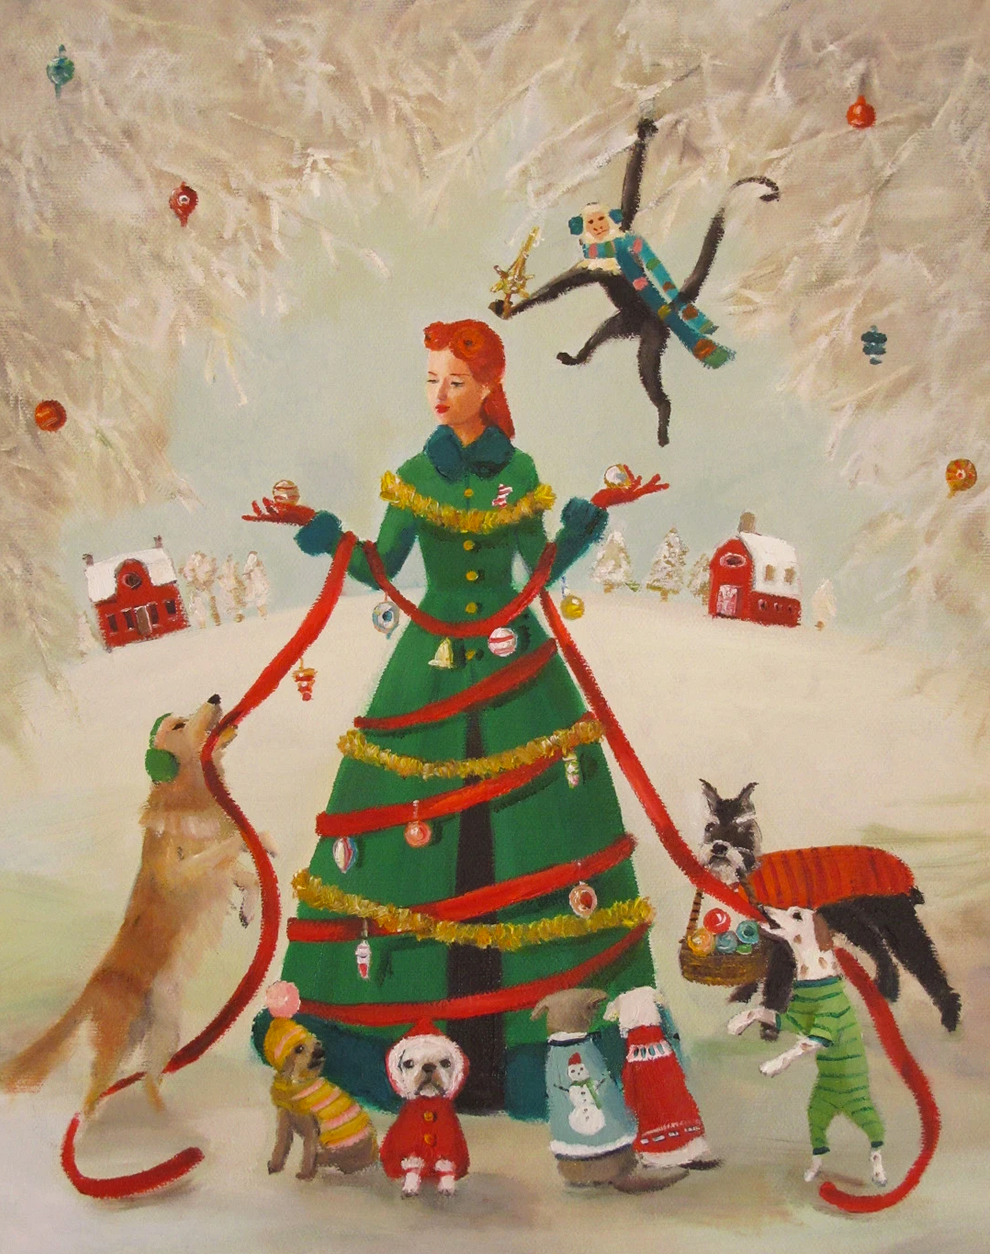 A Miss Moon Christmas Lesson 1: Do Not Mistake People Wearing Green Coats For Christmas Trees, Art Print